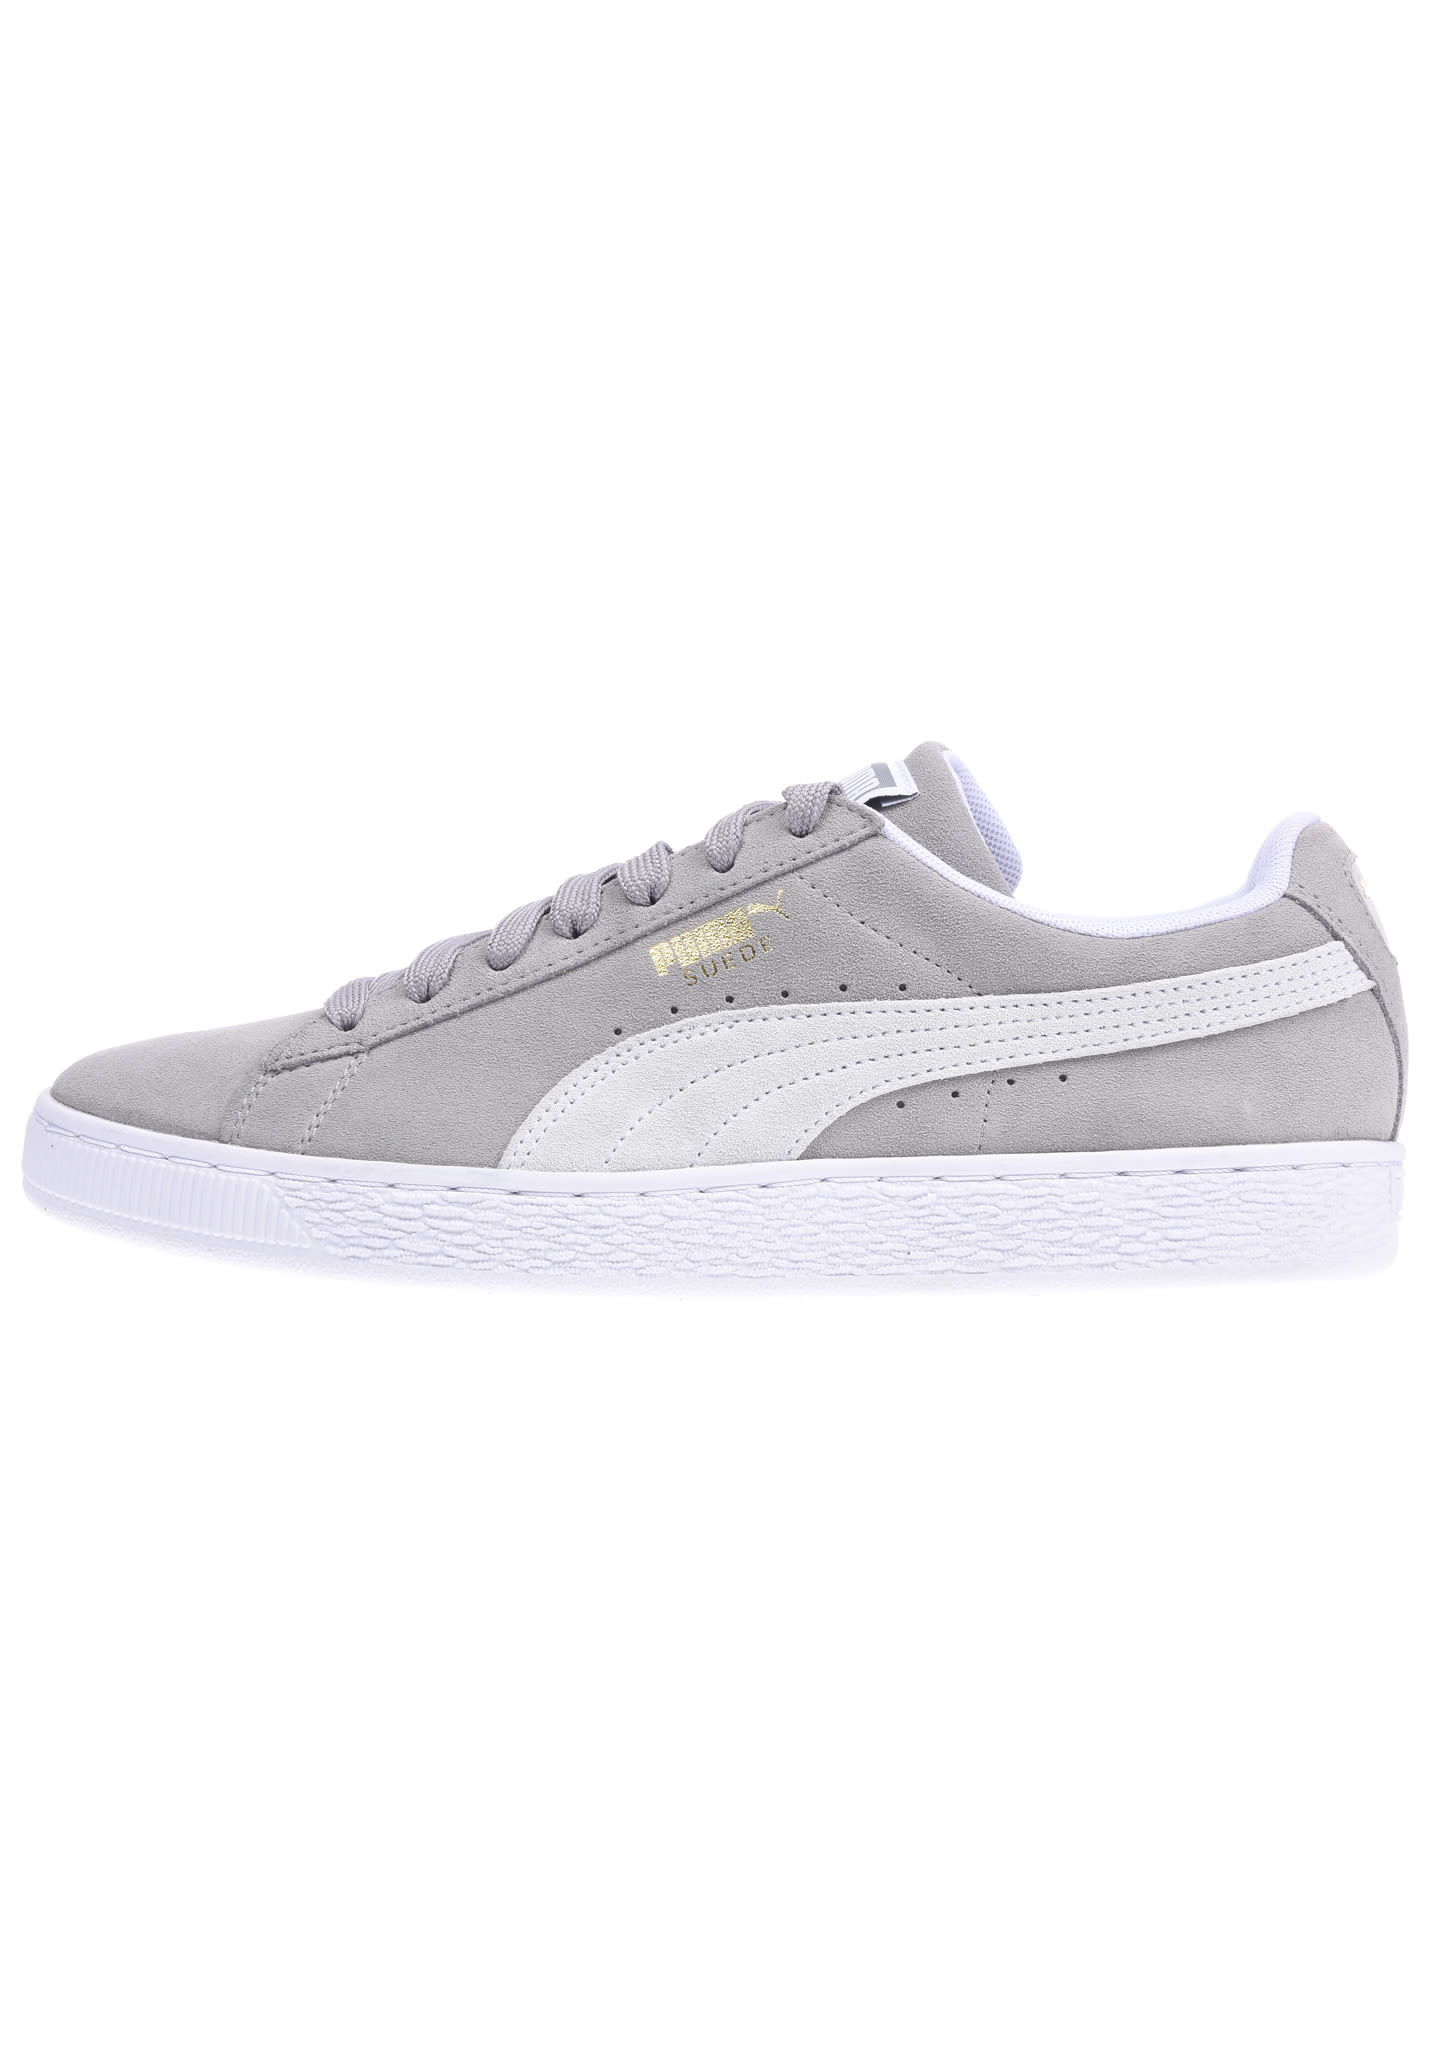 9347ad433 Puma Suede Classic - Sneakers for Men - Grey - Planet Sports